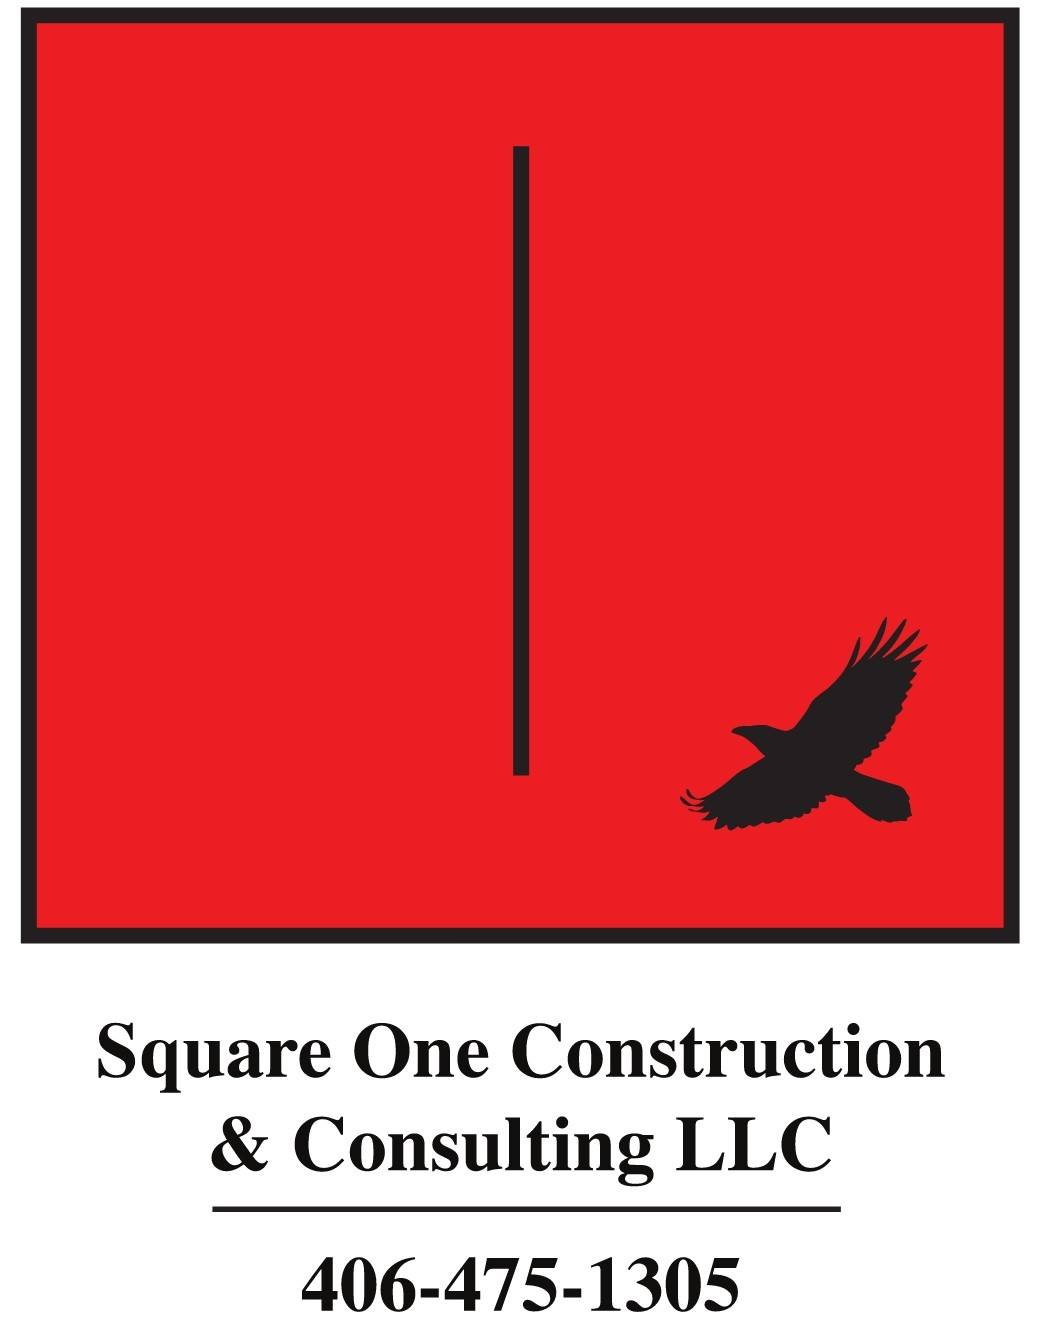 Company logo of Square One Construction & Consulting LLC